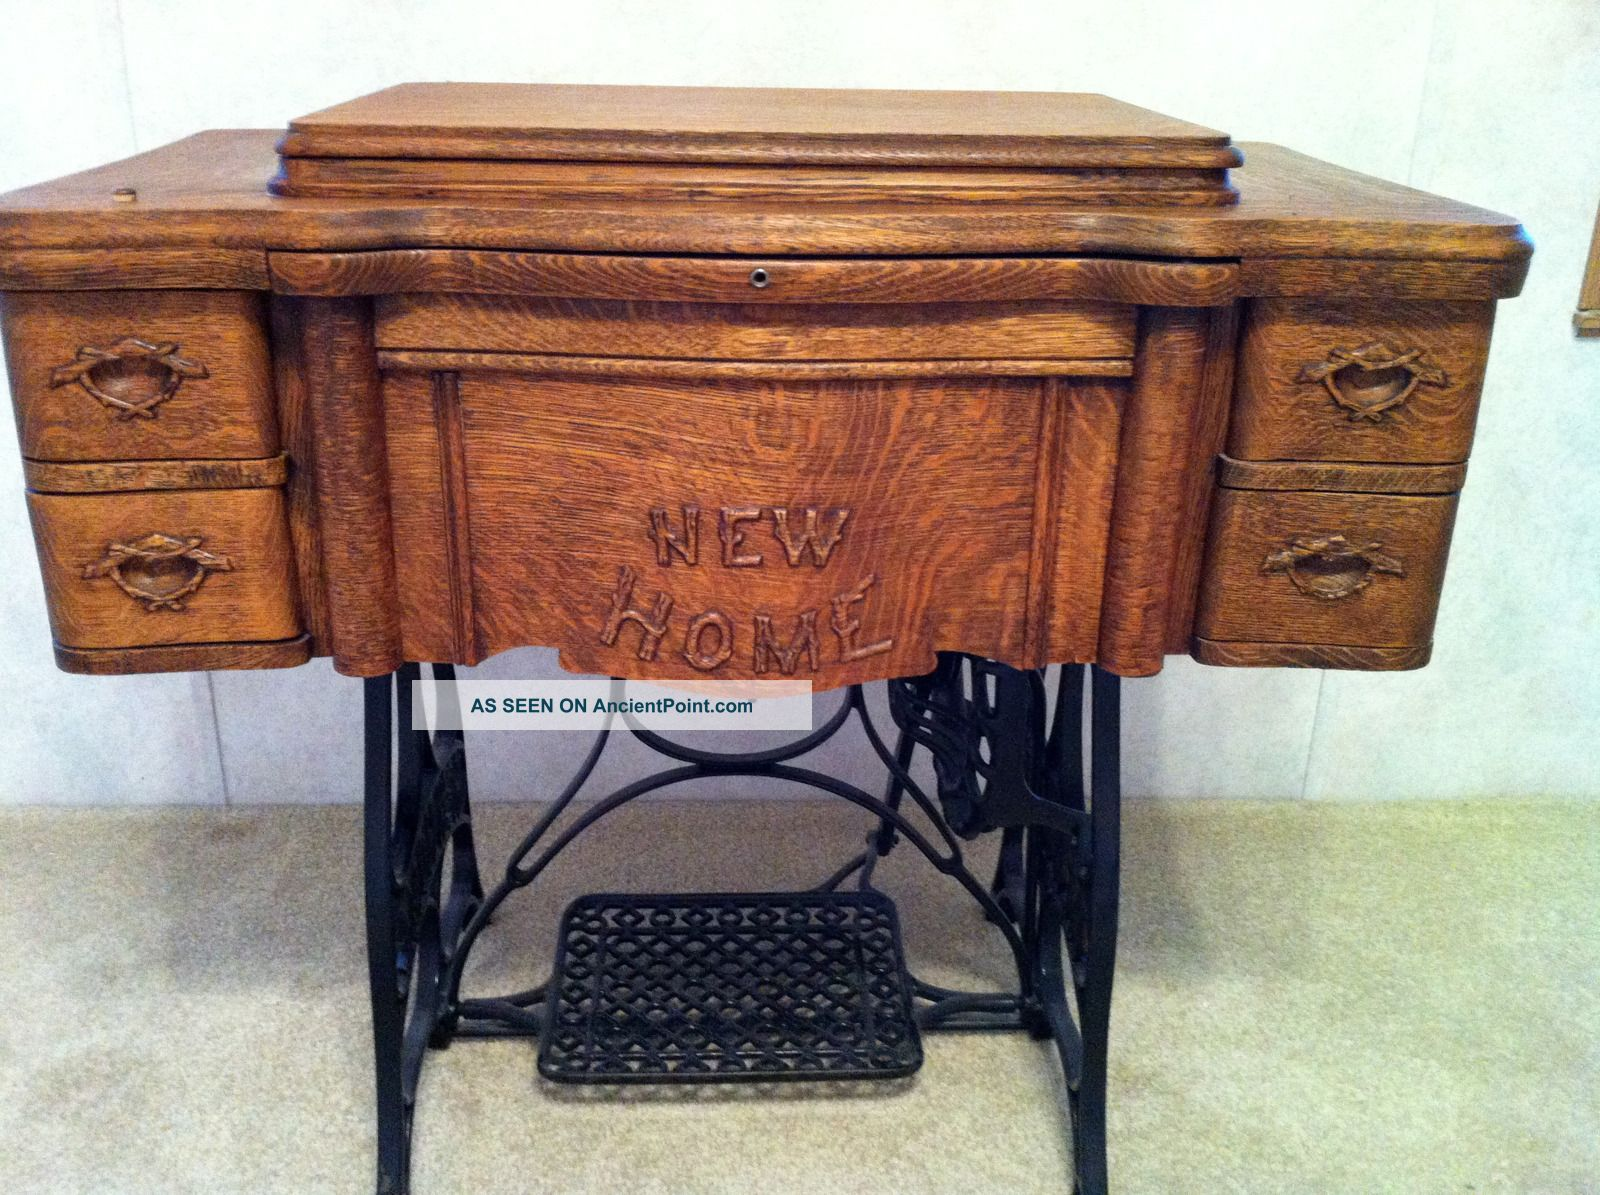 Antique New Home Treadle Sewing Machine 1911 Furniture Design Wooden Sewing Machine Antique Sewing Machines